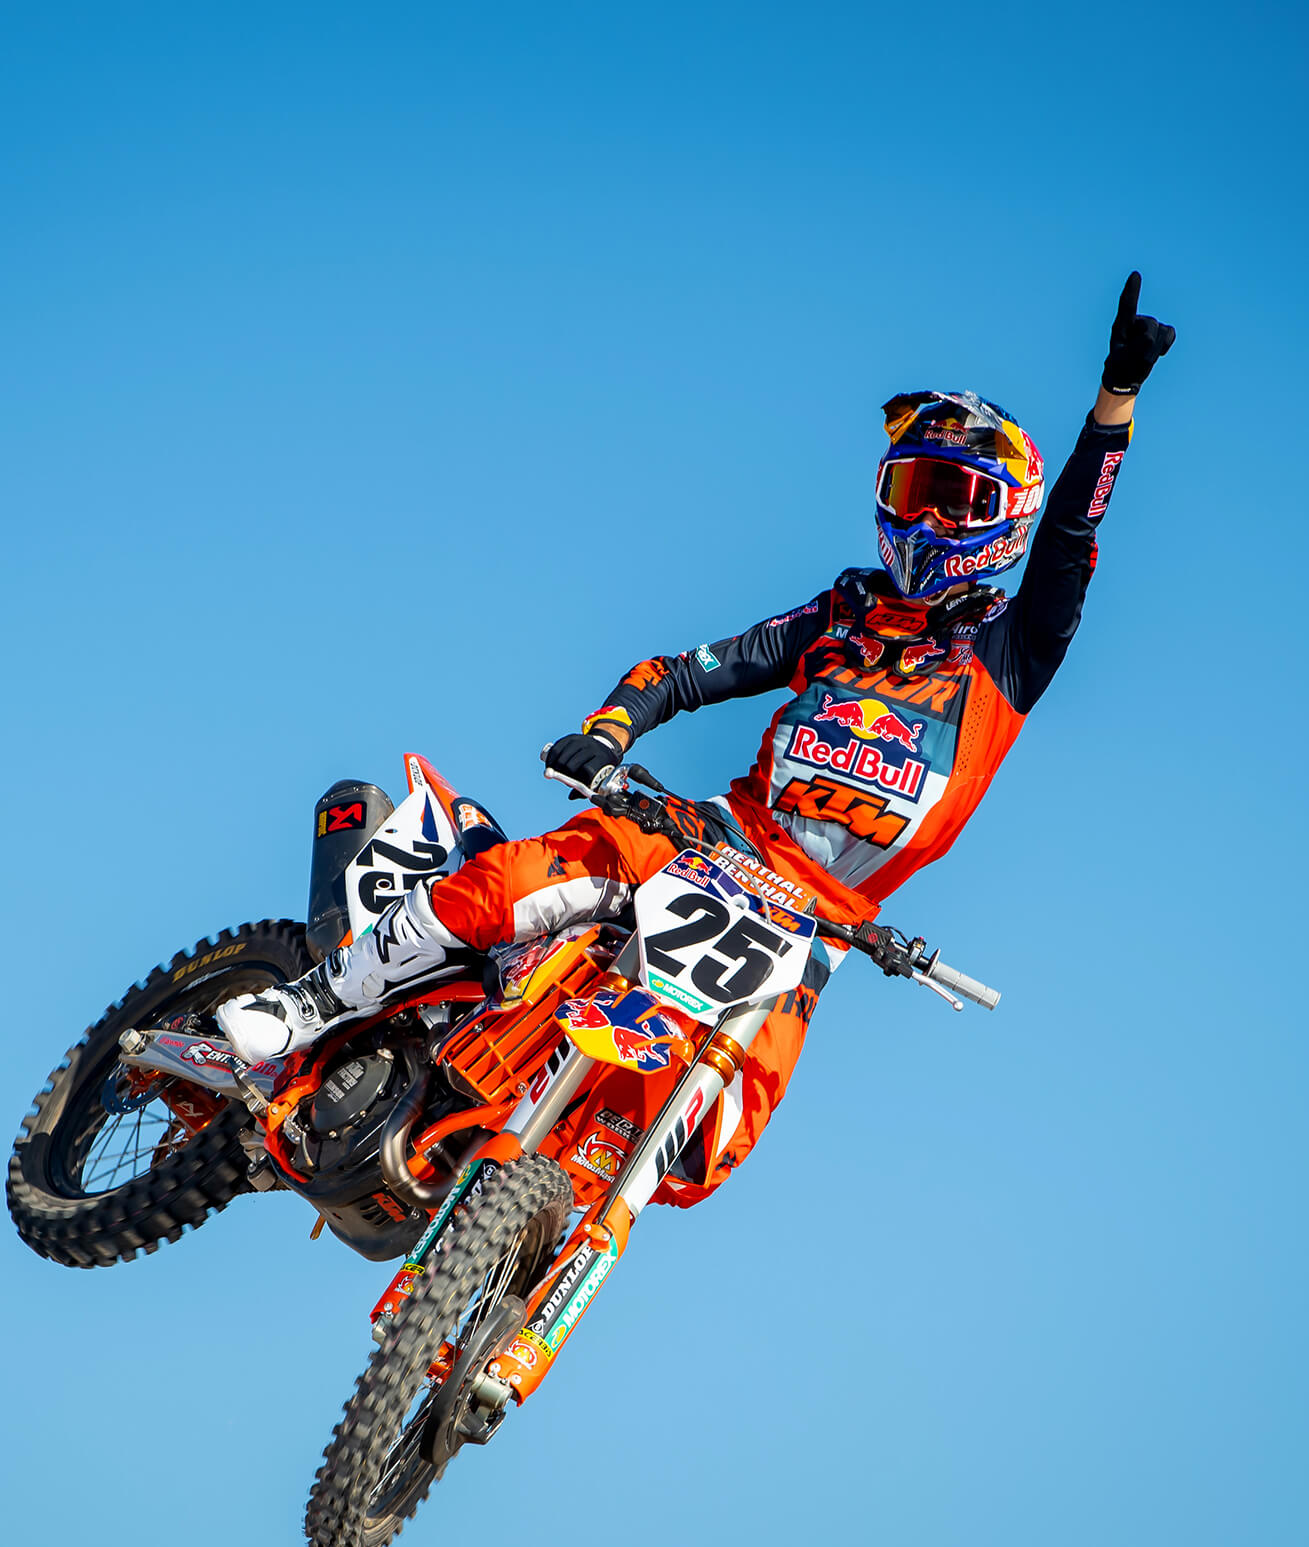 Marvin Musquin on a KTM Bike